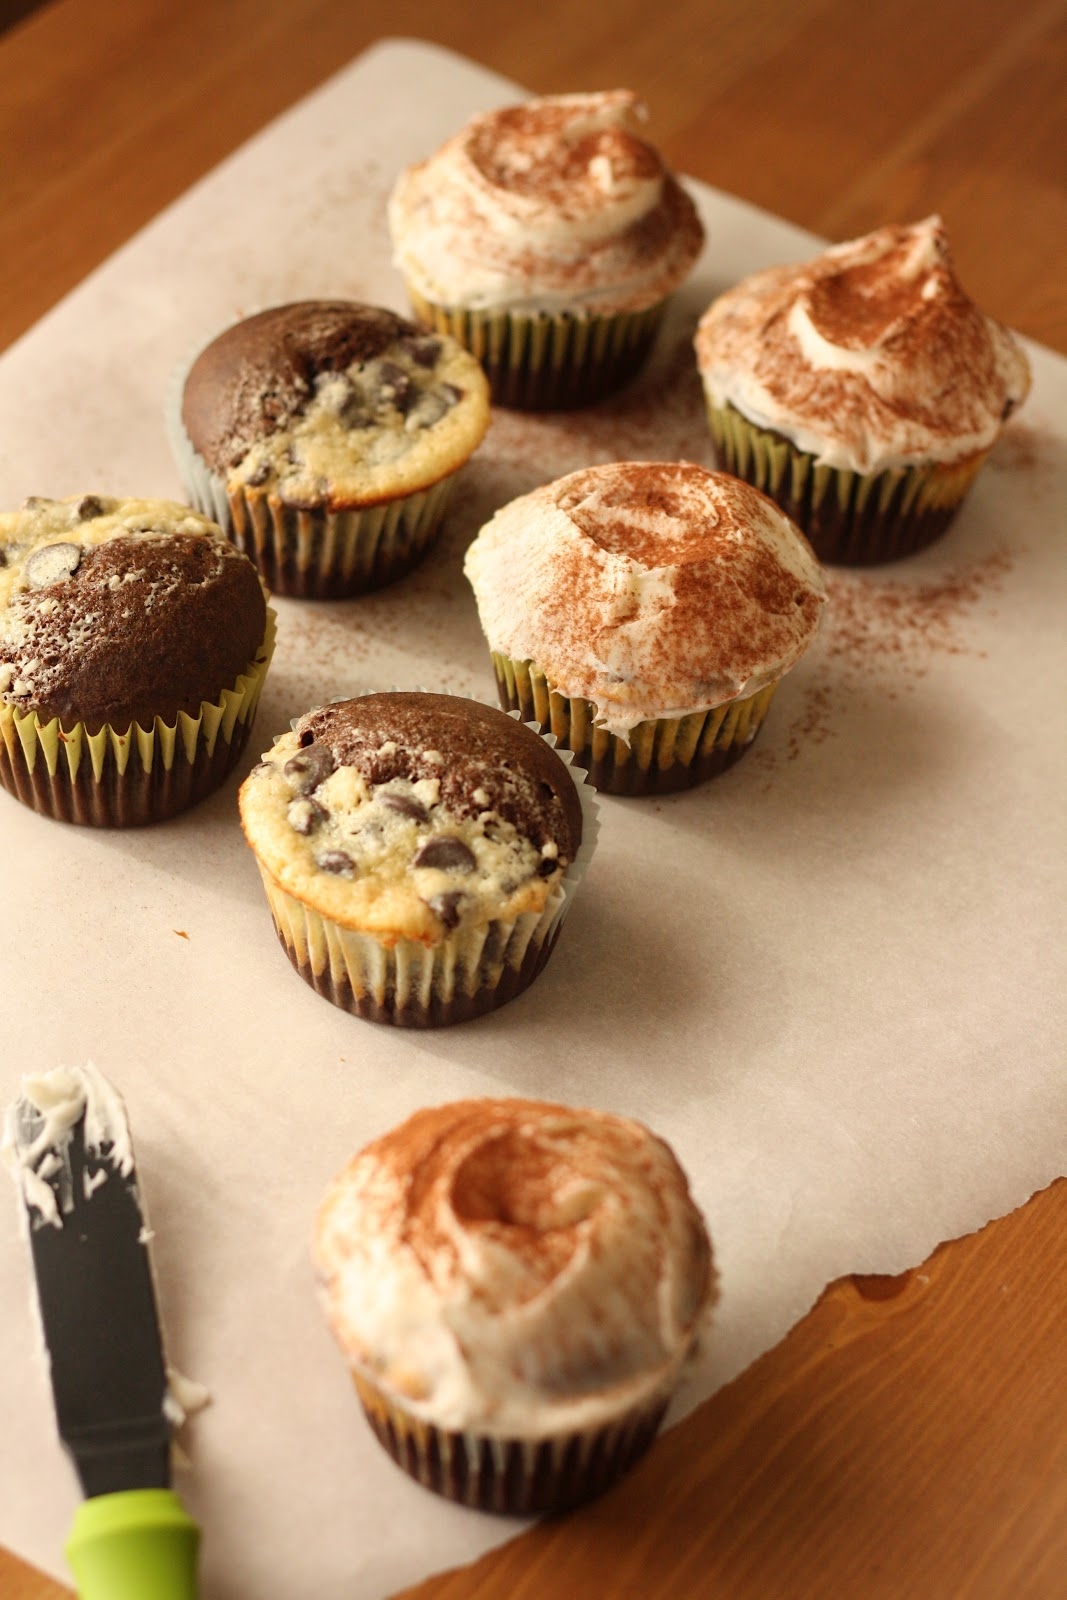 Hummingbird Bakery Black Bottom Cupcakes Recipe (Adapted for High ...